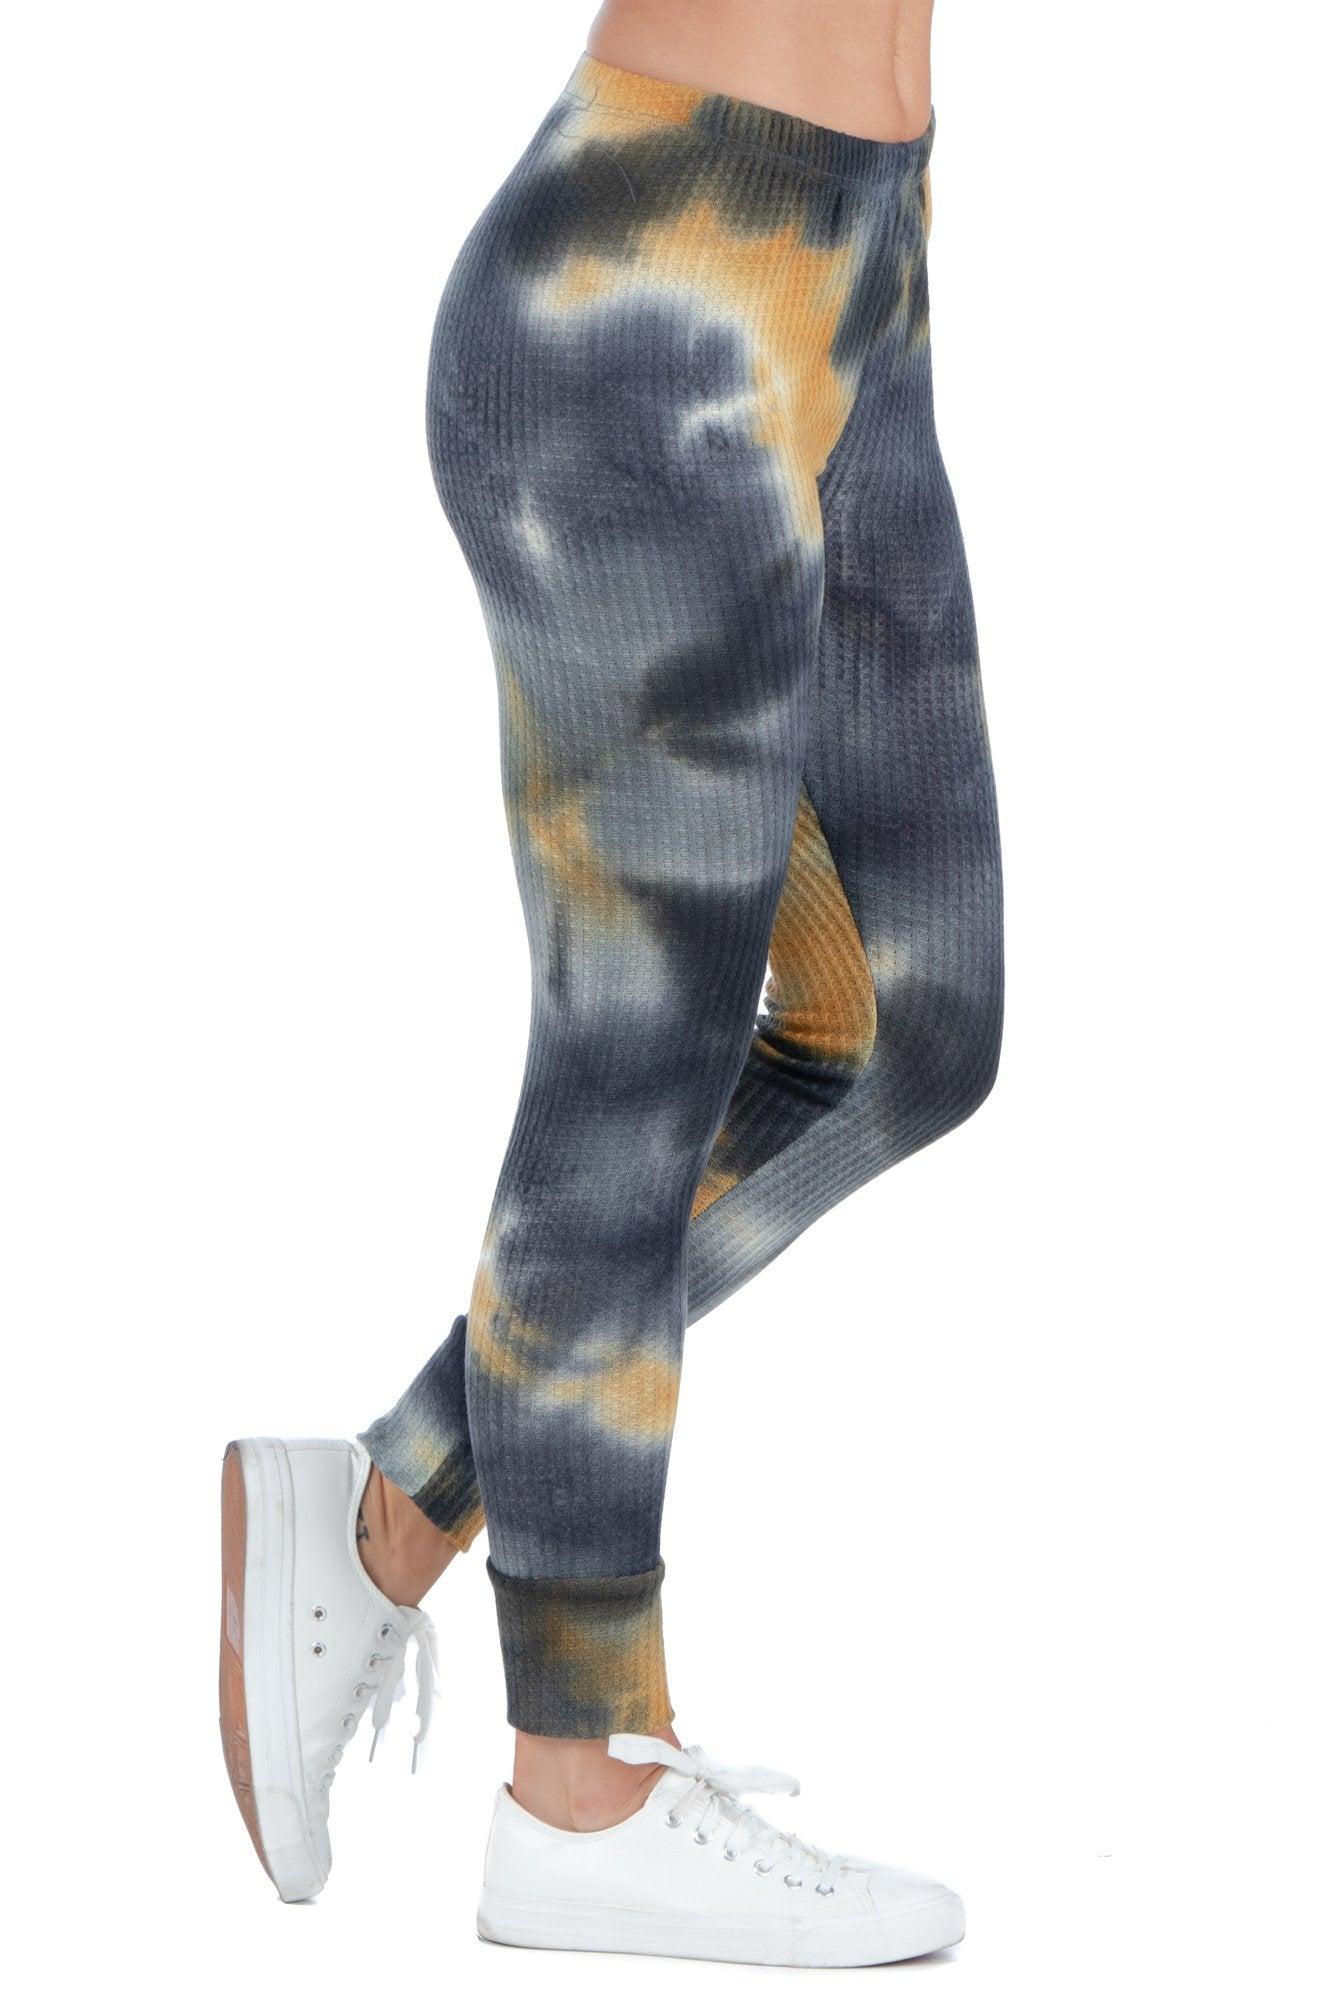 24seven Comfort Apparel Tie Dye Print Fitted Ankle Cuff Sweatpants